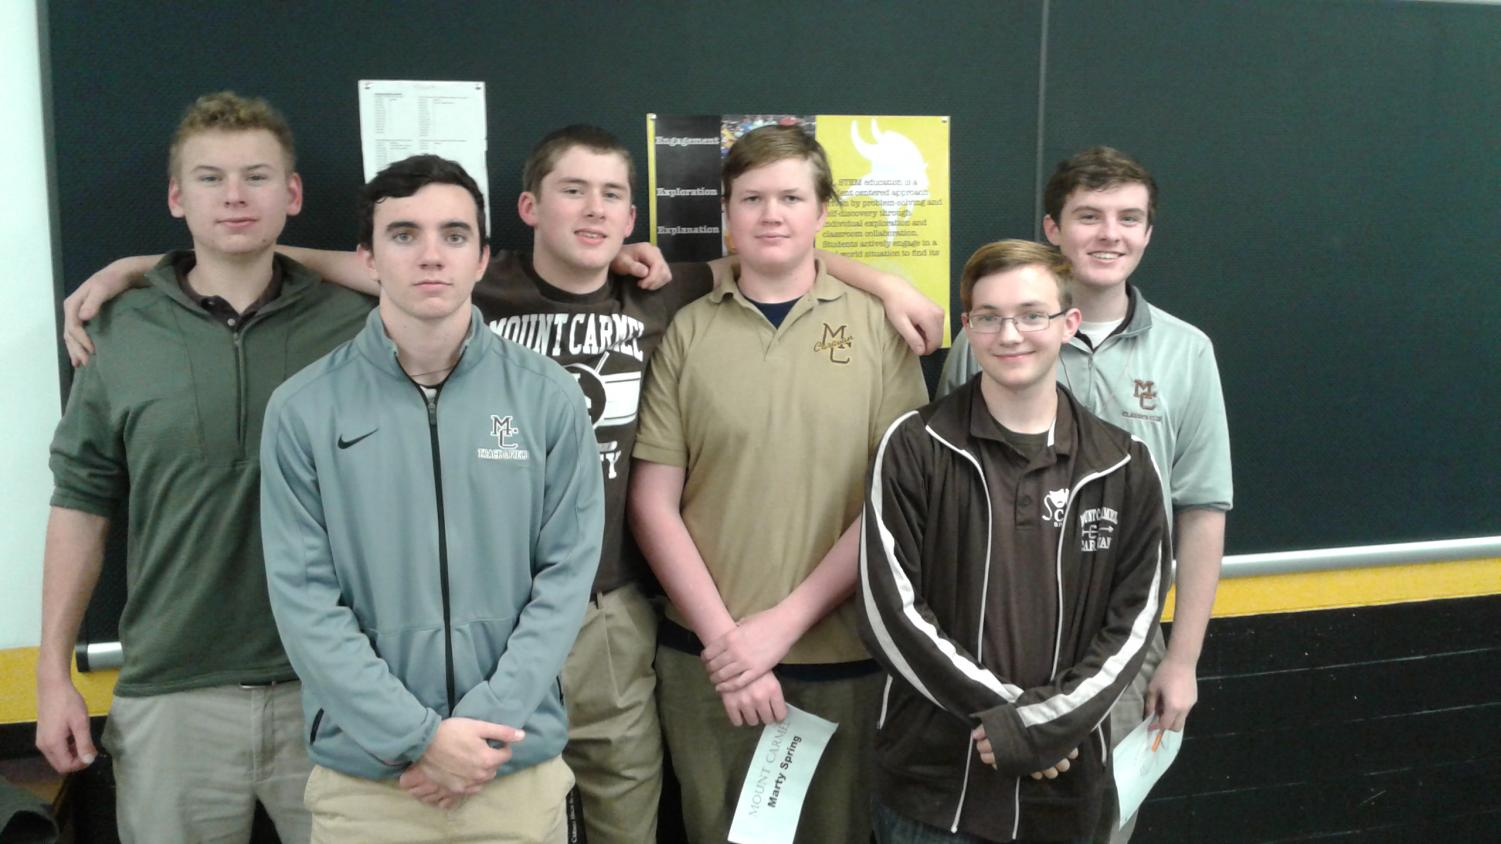 Varsity Scholastic Bowl Team left to right: Anthony Zralka, Thomas Jacobs, Andrew Walsh, Marty Spring, Luke Ehrenstrom, and Nate Finn.